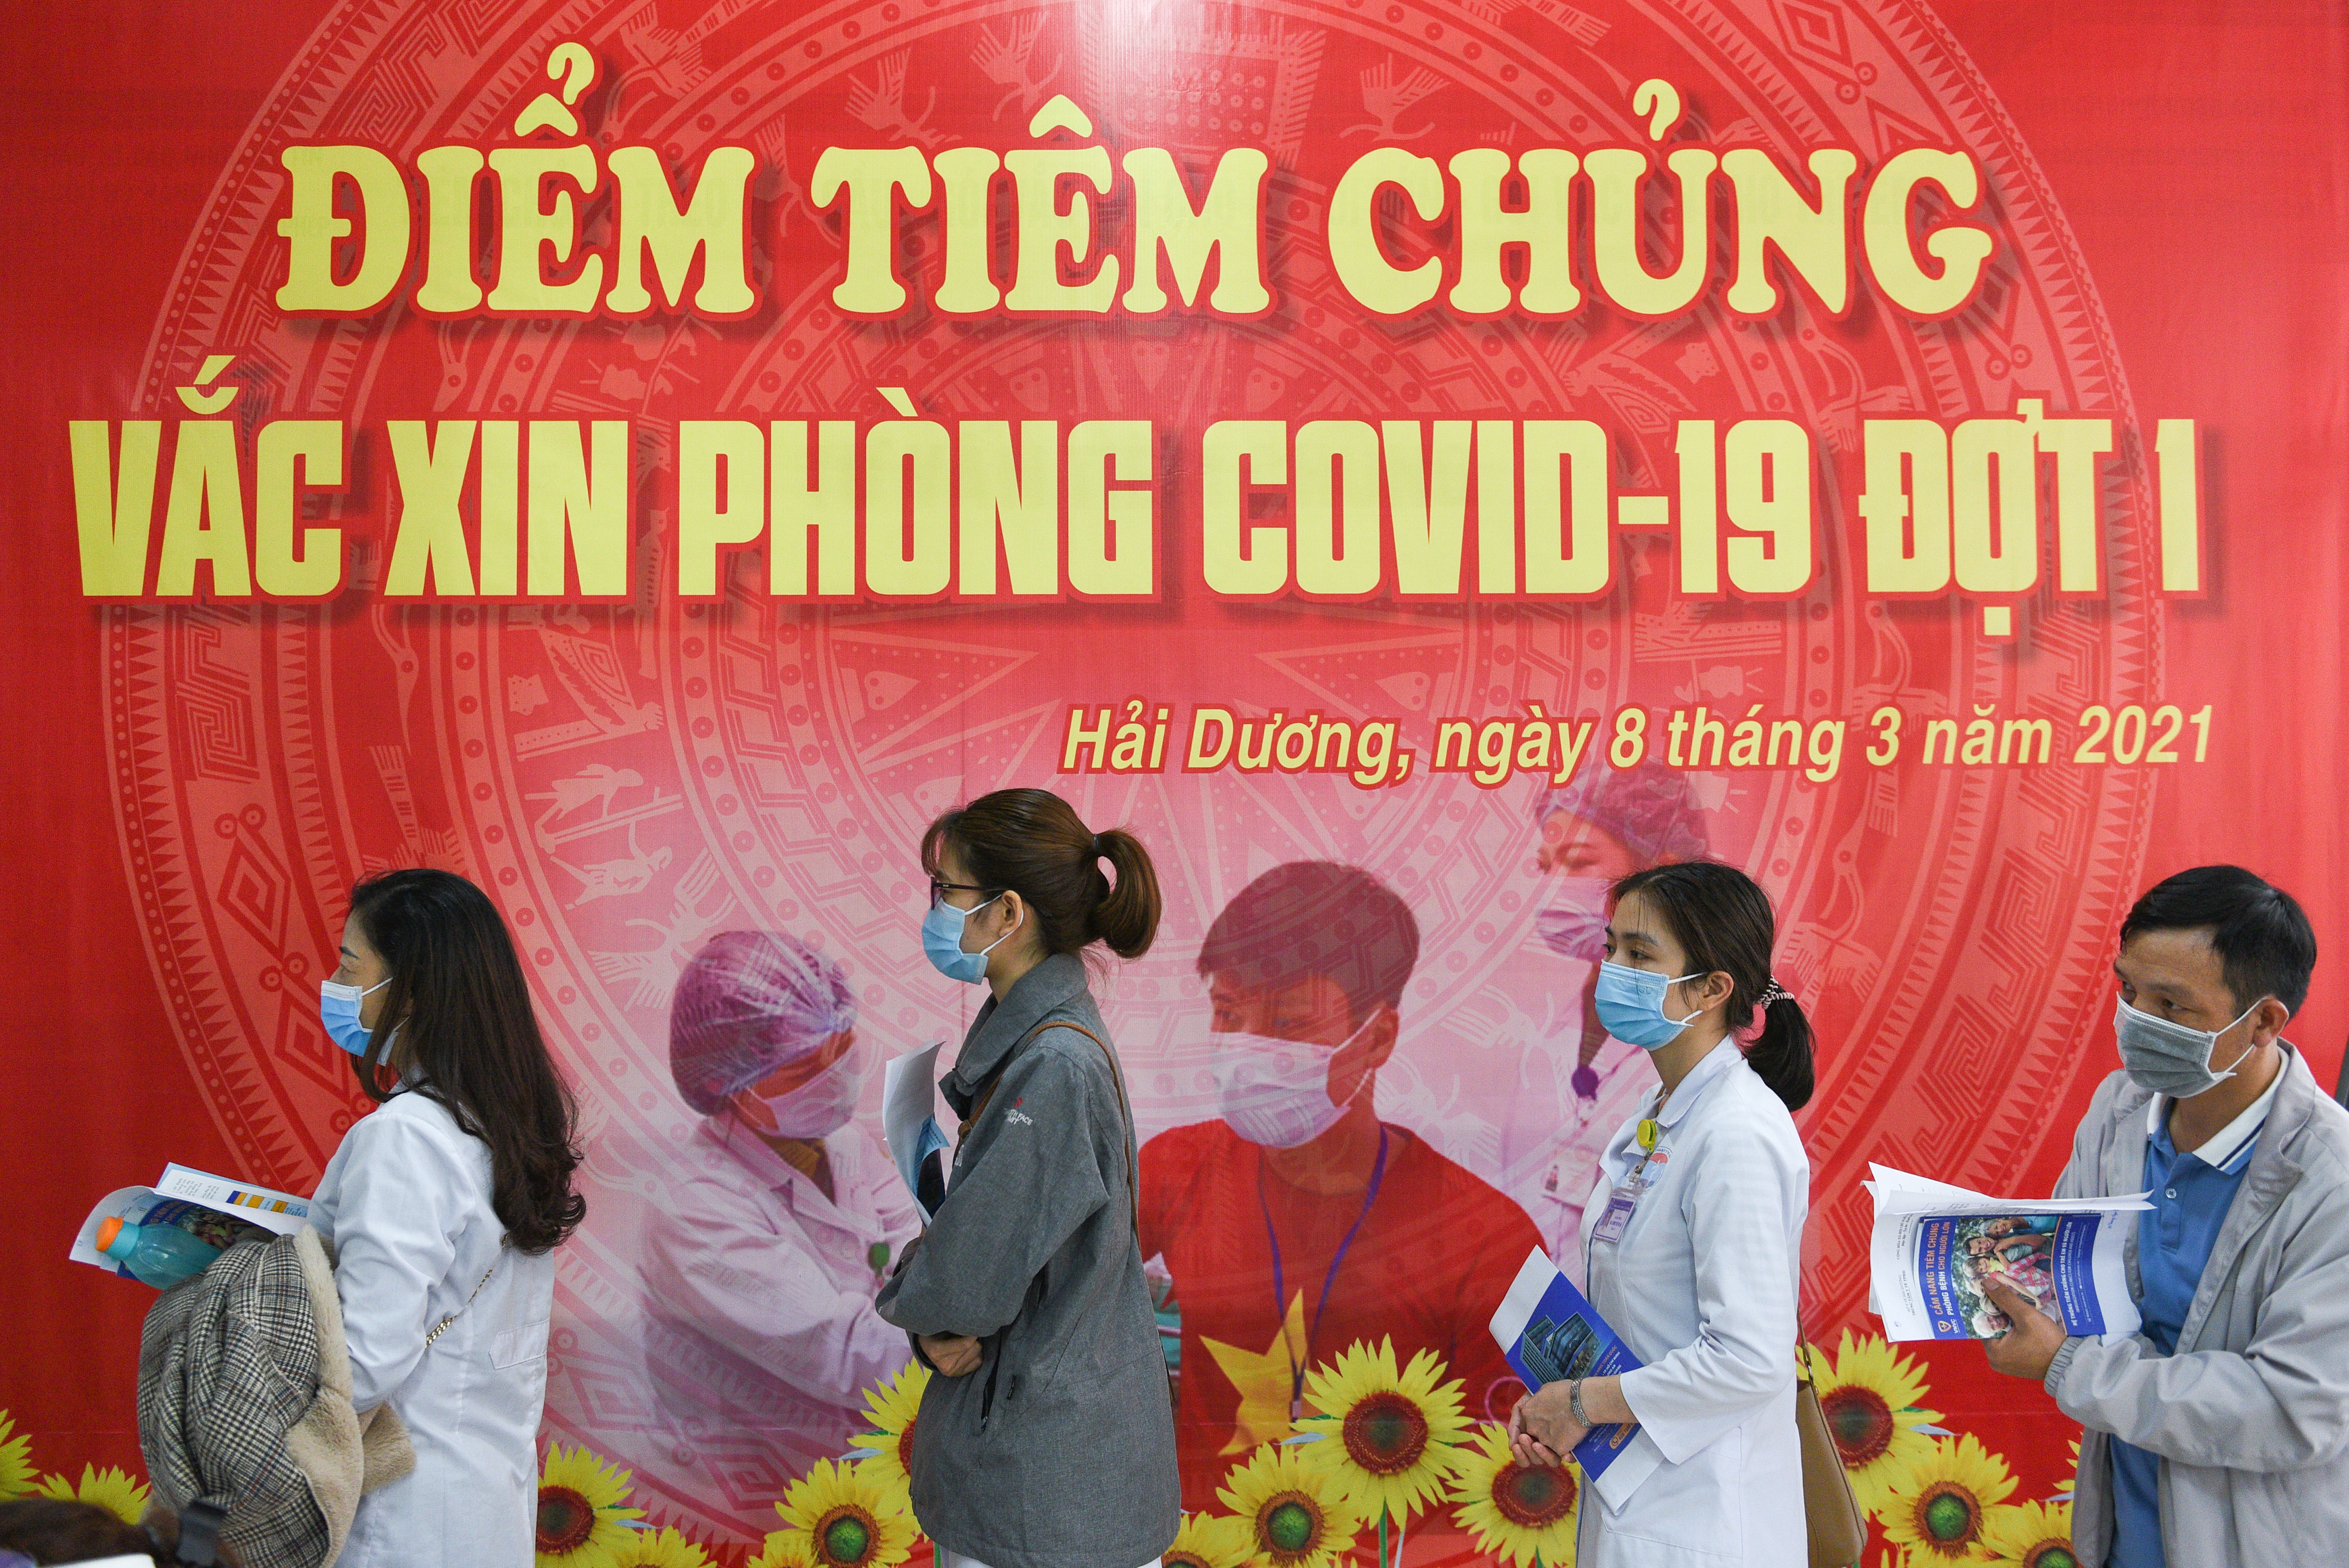 Health workers wait for their turn as Vietnam starts its official rollout of AstraZeneca's coronavirus disease (COVID-19) vaccine for health workers, at Hai Duong Hospital for Tropical Diseases, Hai Duong province, Vietnam, March 8, 2021. REUTERS/Thanh Hue/Files